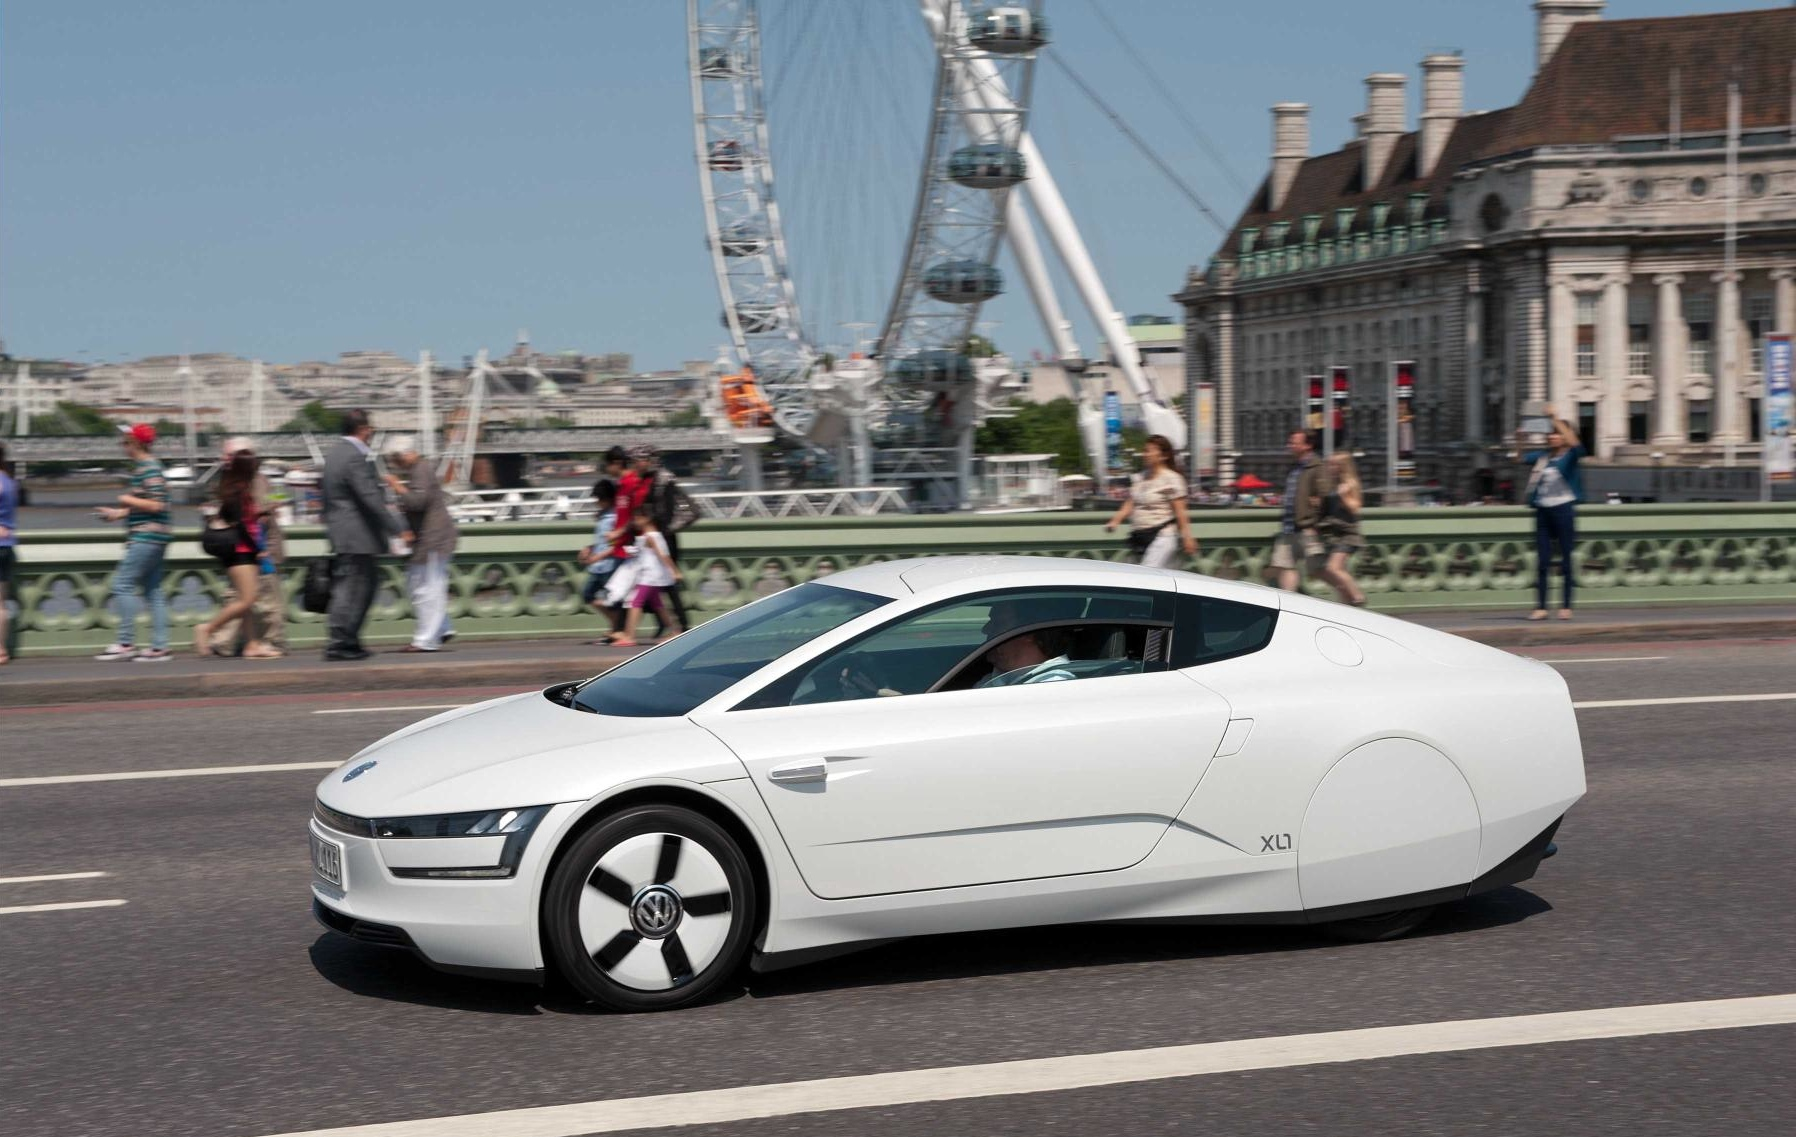 volkswagen xl1 hybrid visits london video autoevolution. Black Bedroom Furniture Sets. Home Design Ideas